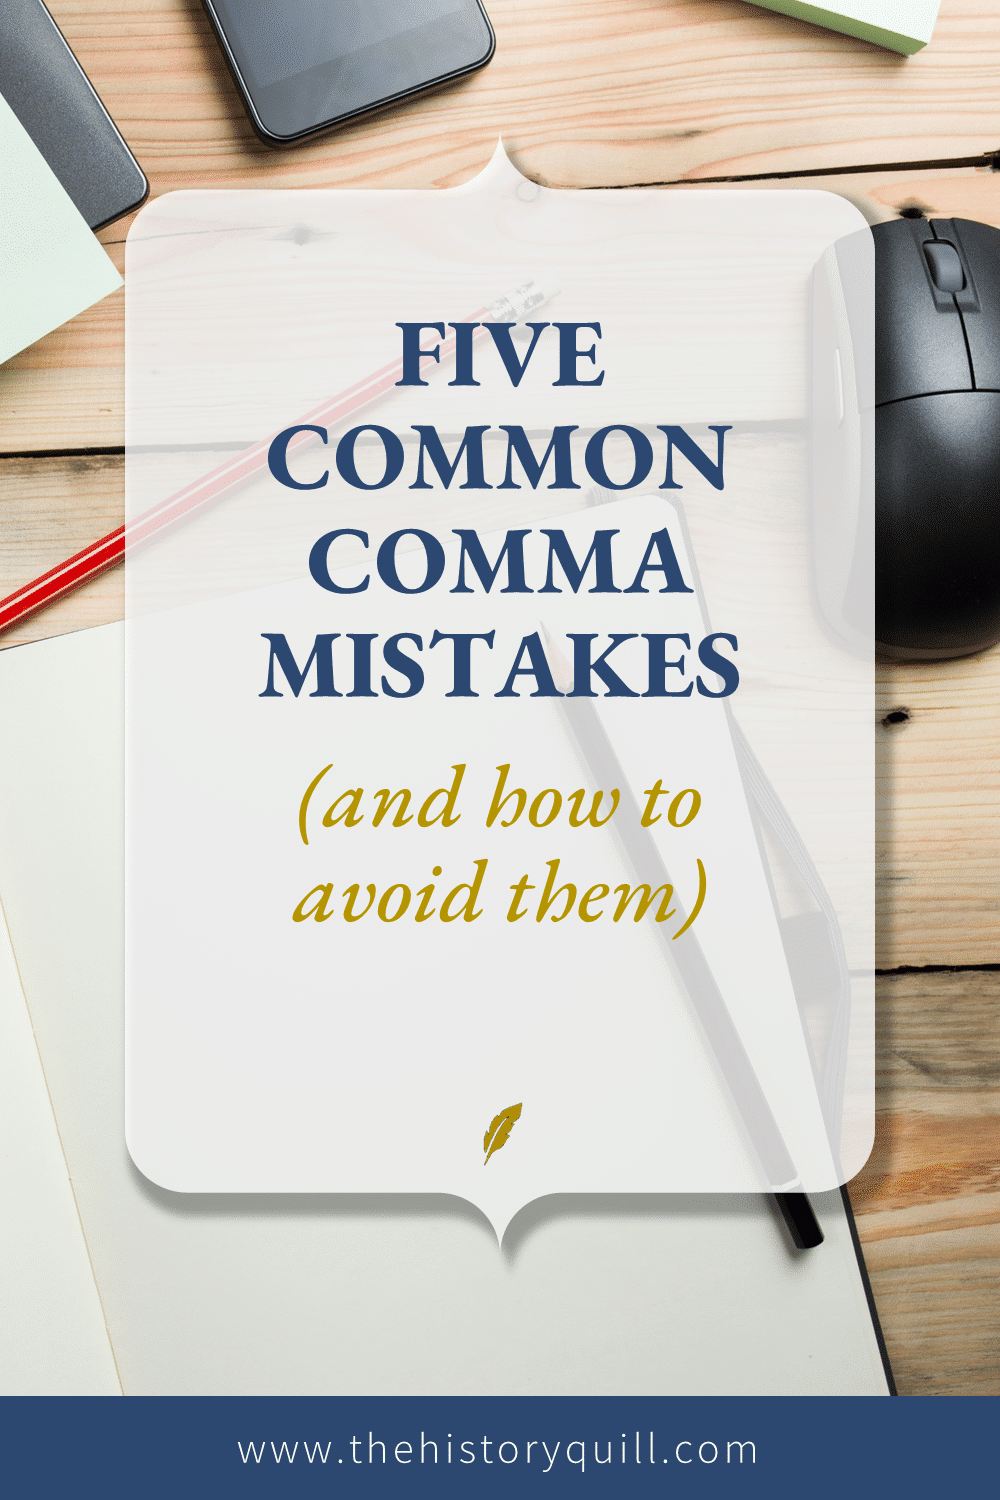 From The History Quill blog, five common comma mistakes (and how to avoid them) in your historical fiction writing